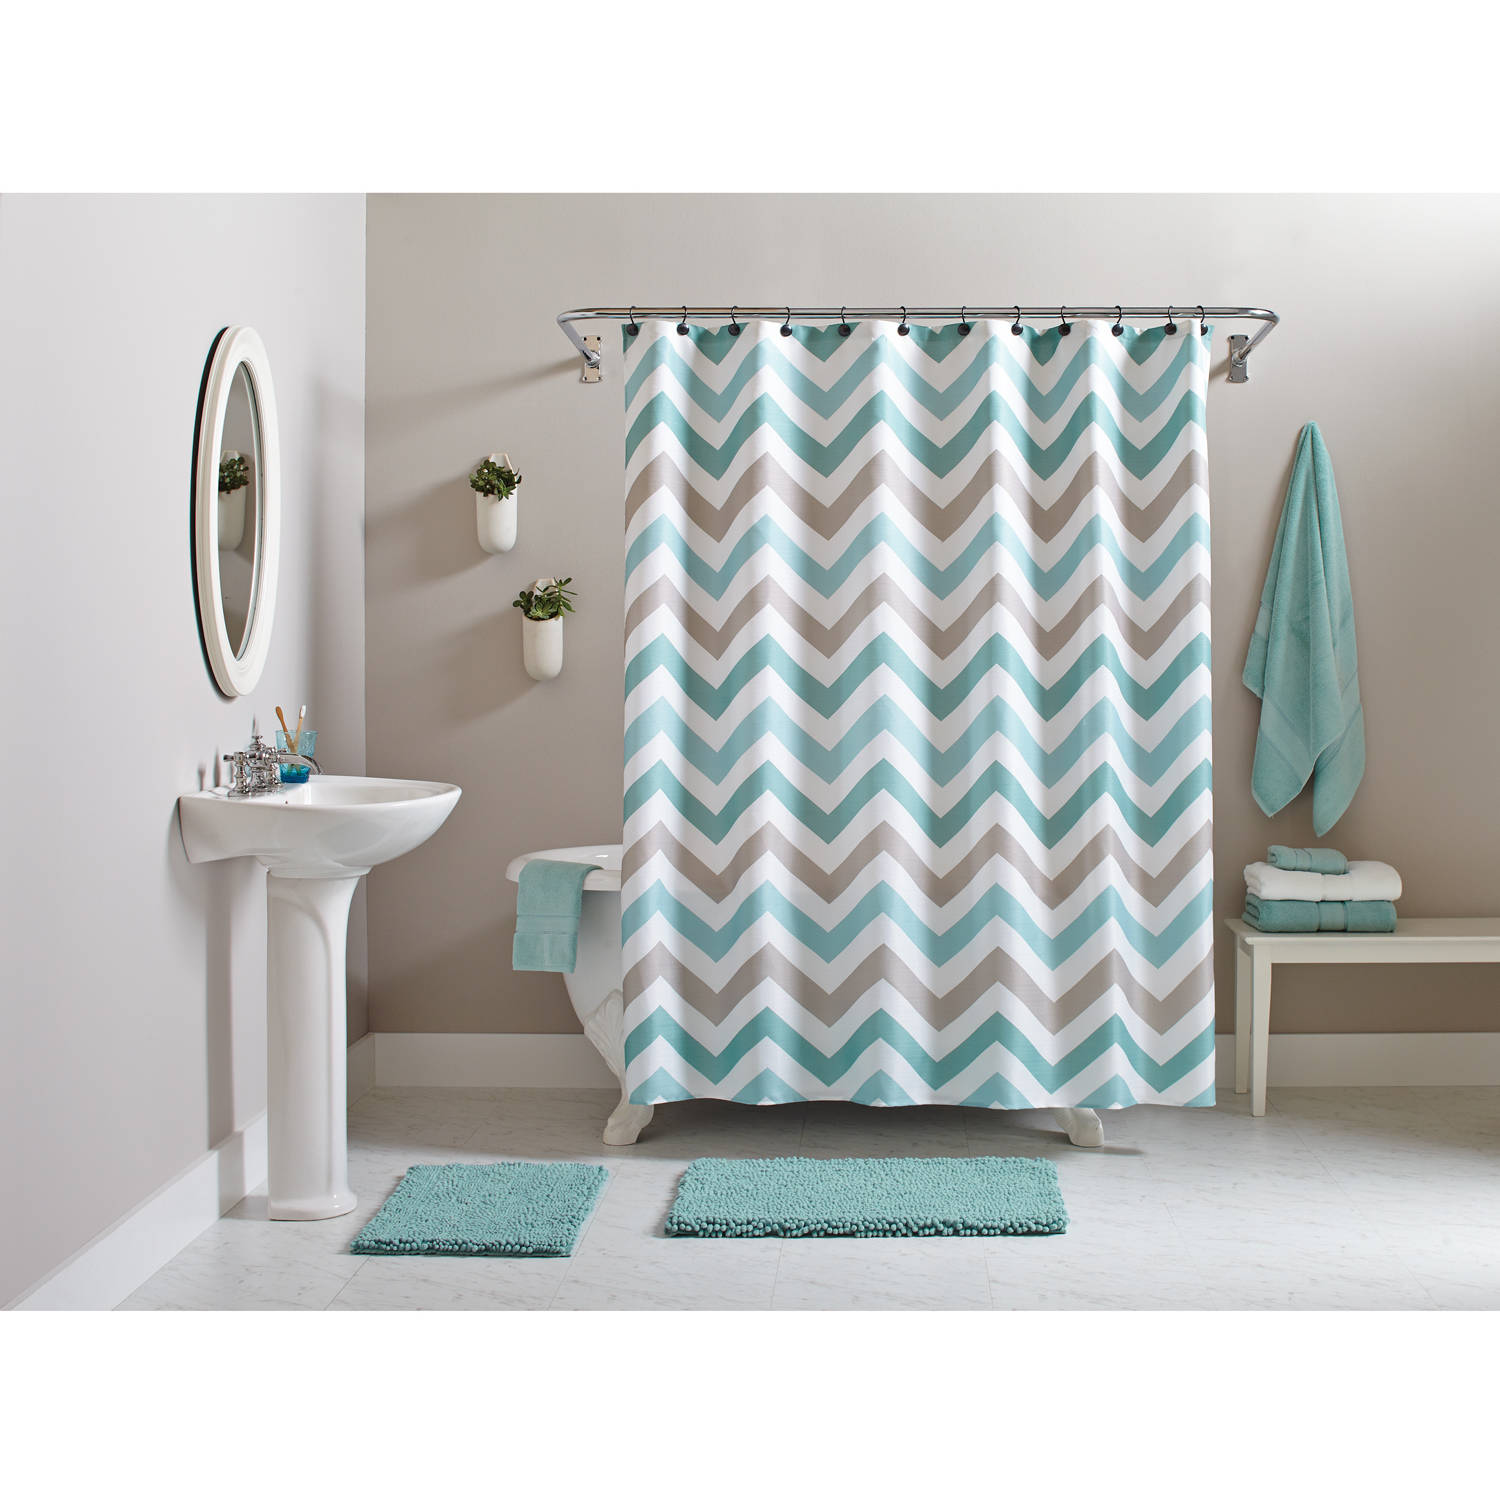 bathroom decor walmart. fun new looks for kids bathrooms bath